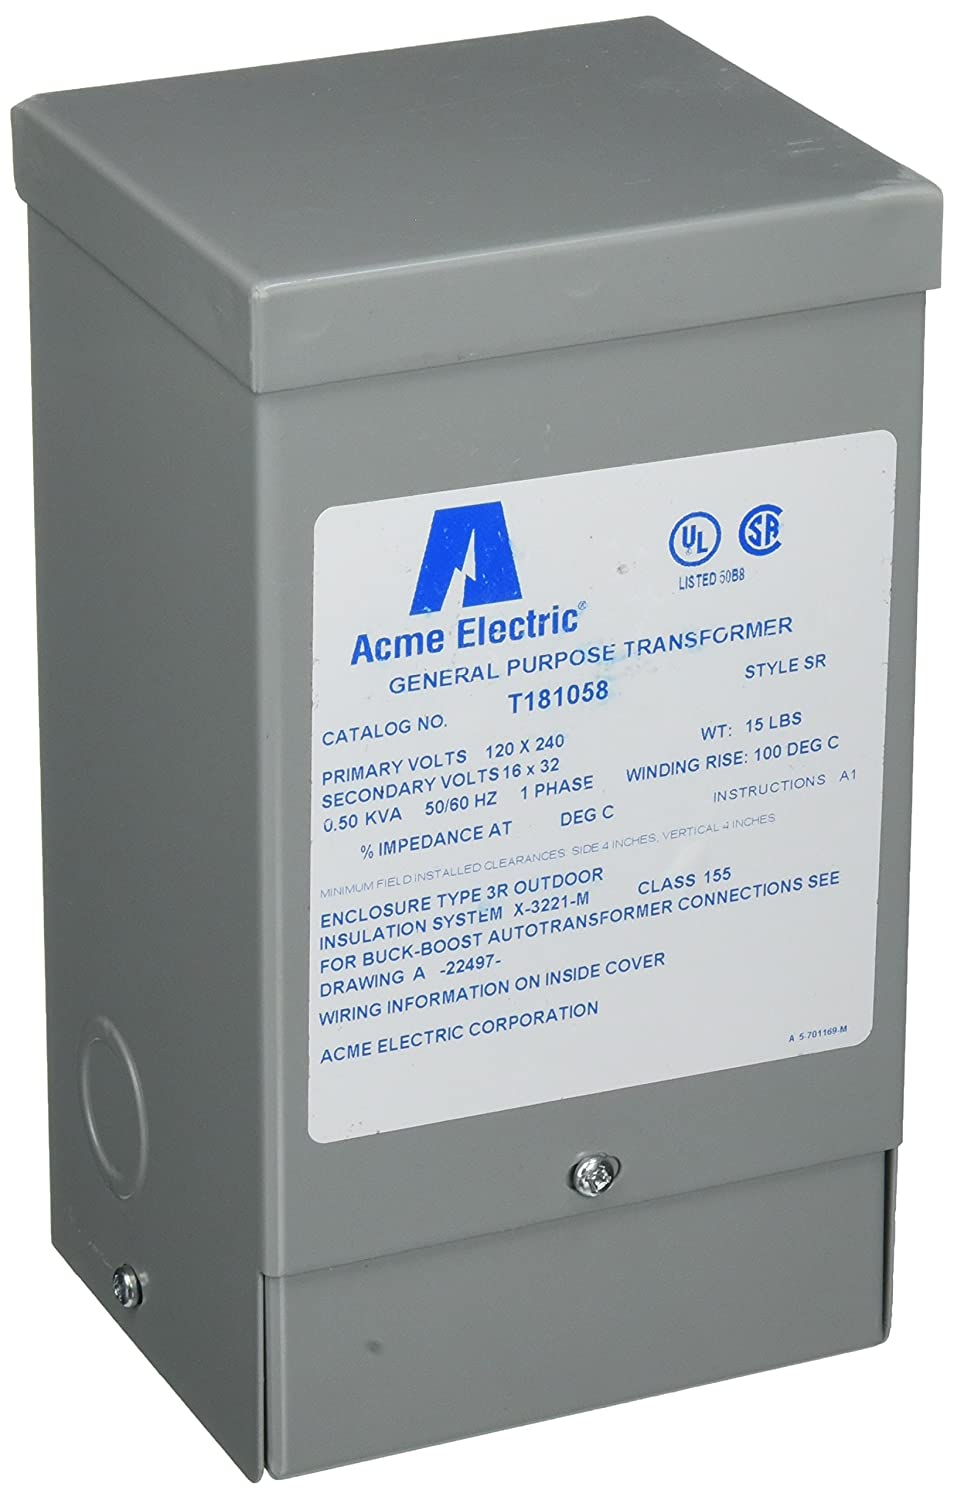 Hubbell Acme Electric T181058 Buck Boost Transformer 1 Phase 60 Hz Drytype Testing Open Electrical 05 Kva 120v X 240v Primary Volts 16v 32v Secondary Industrial